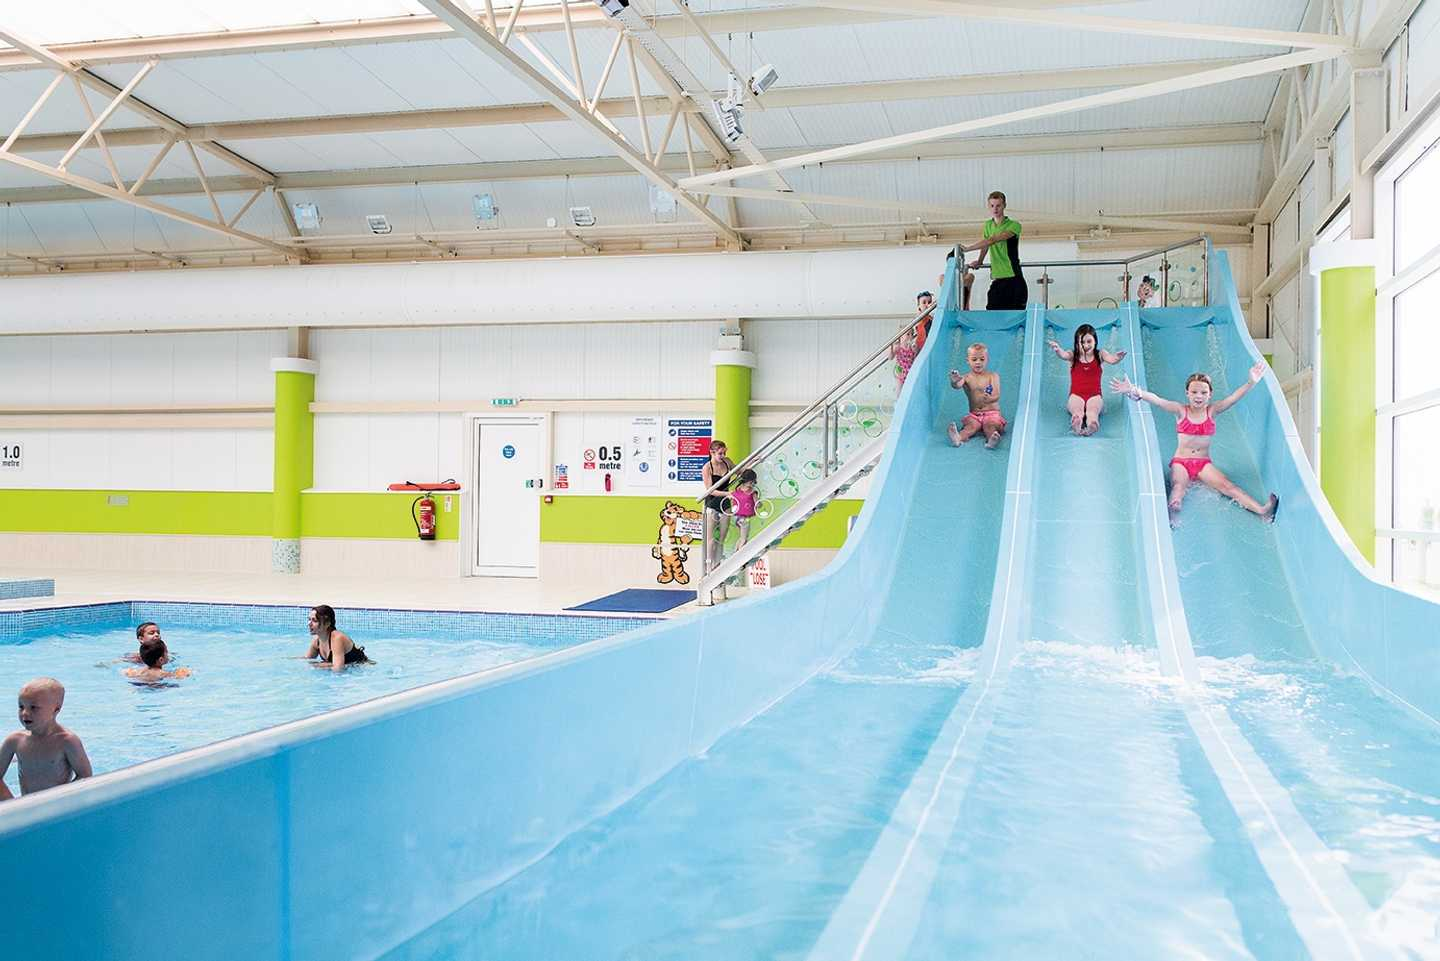 Guests whooshing down the multi-lane slide